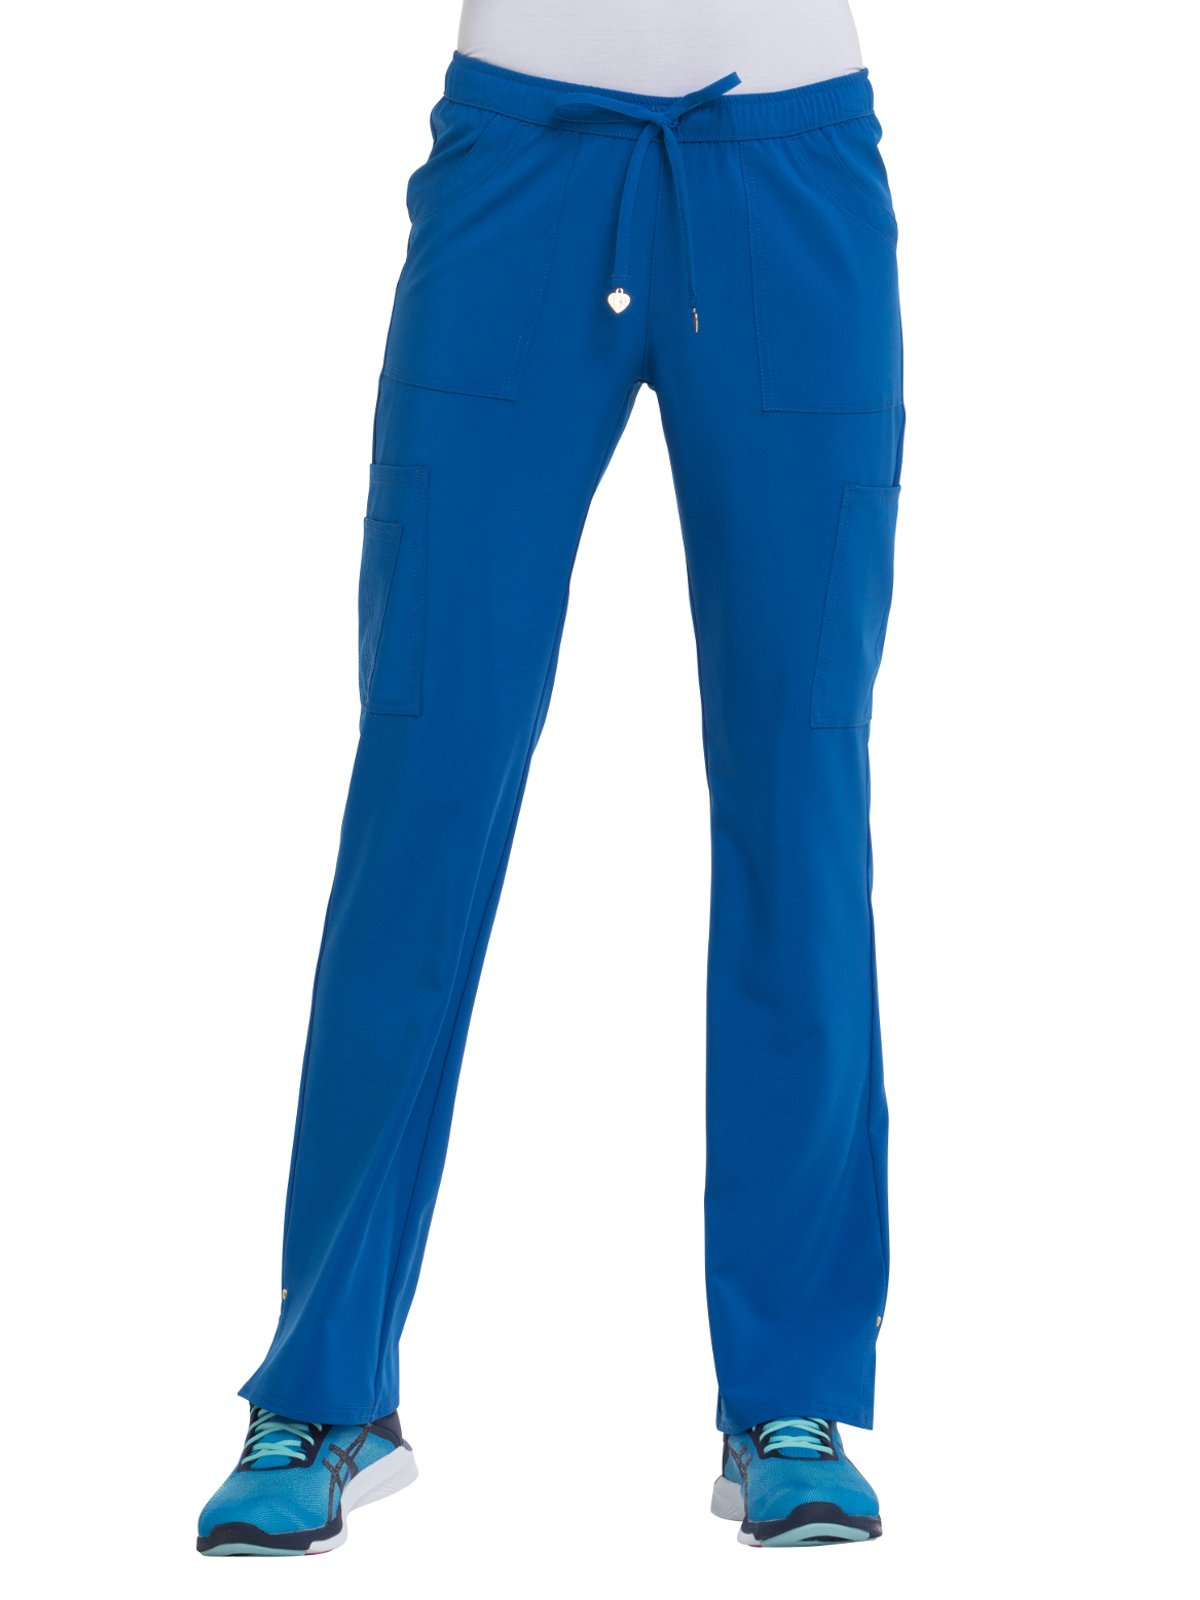 HeartSoul Love Always Women's Charmed Low Rise Drawstring Cargo Scrub Pant Small Royal